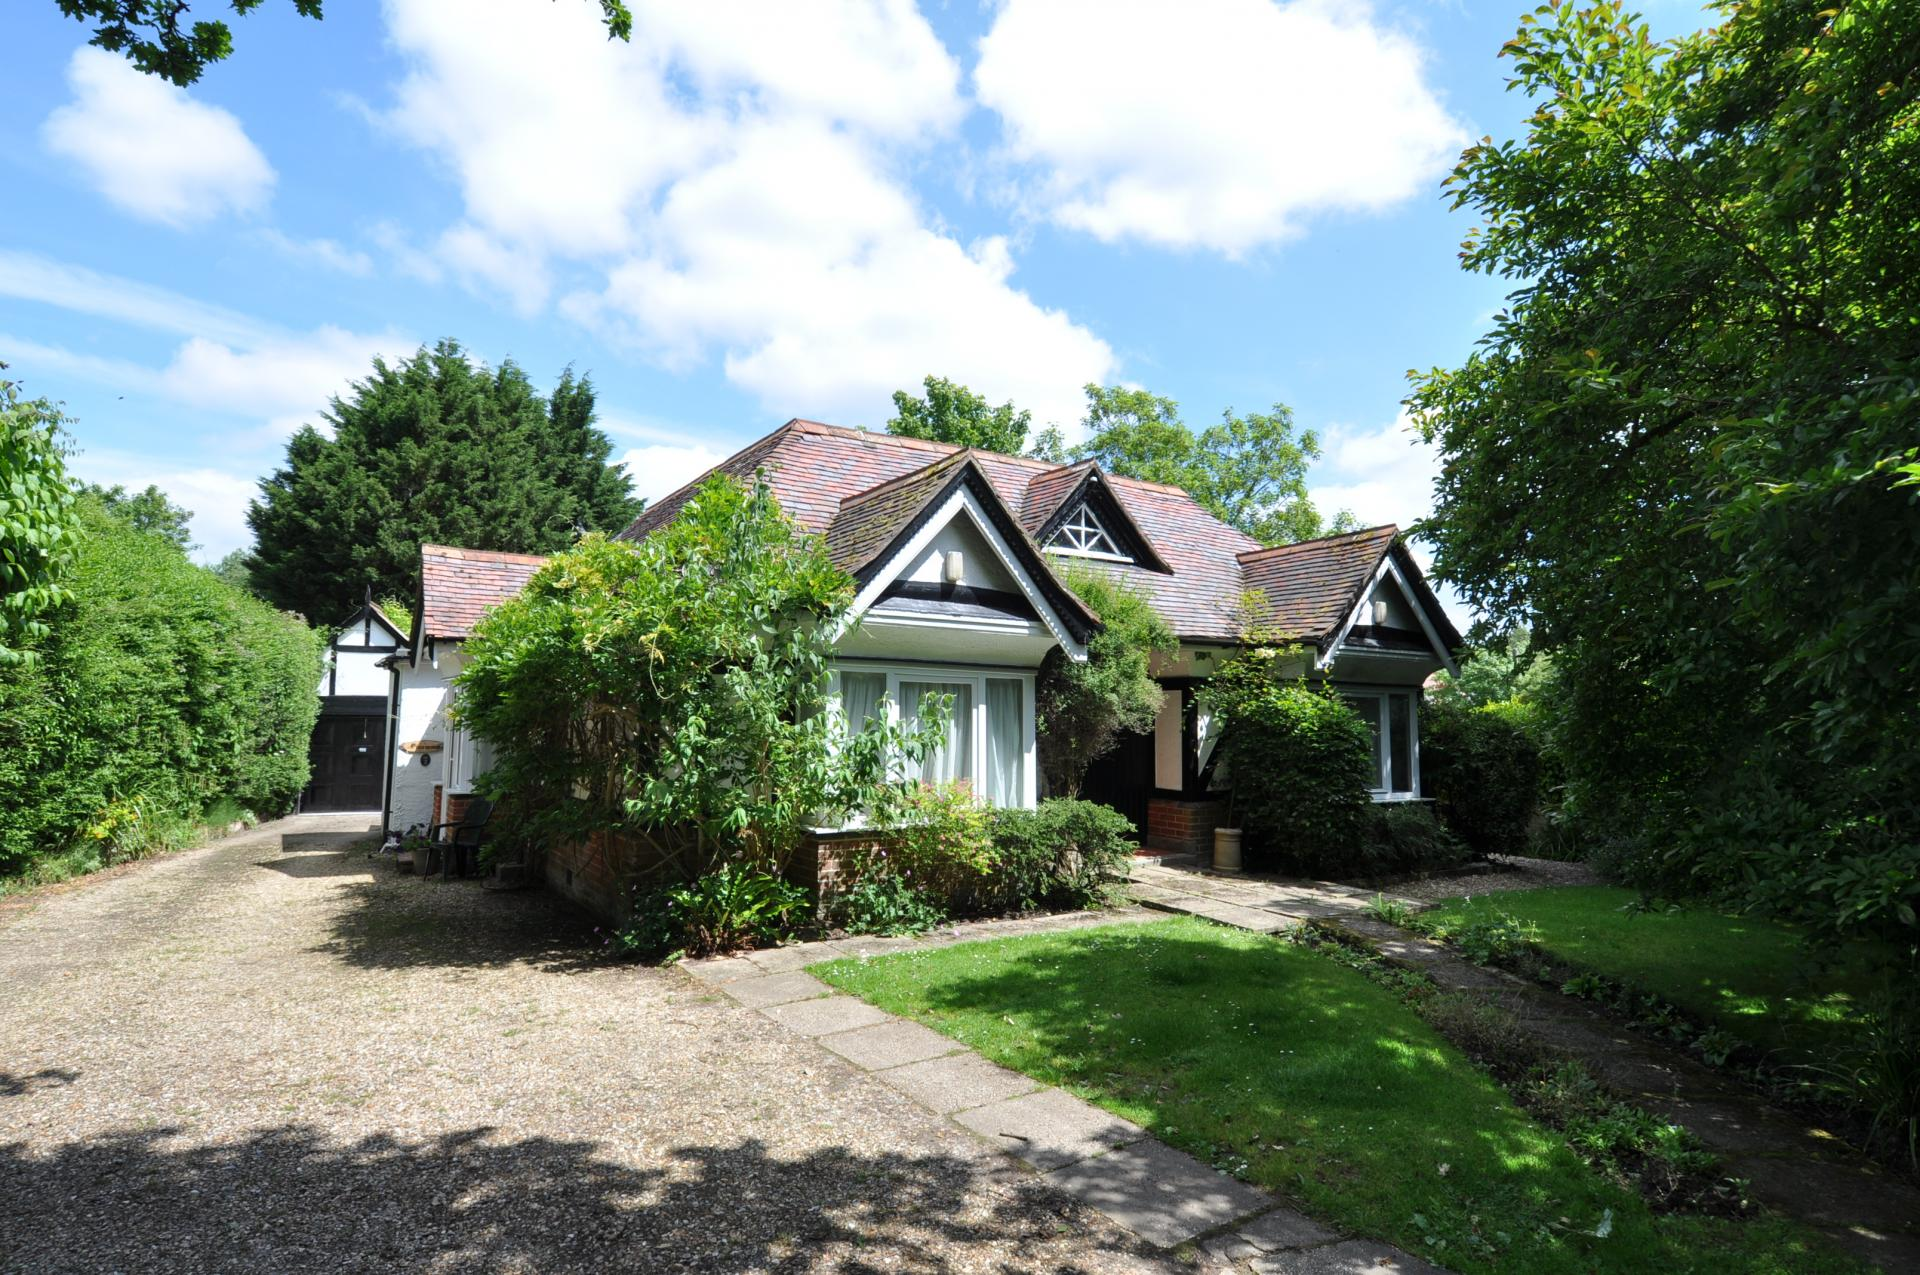 4 Bedrooms Bungalow for sale in Lyndhurst